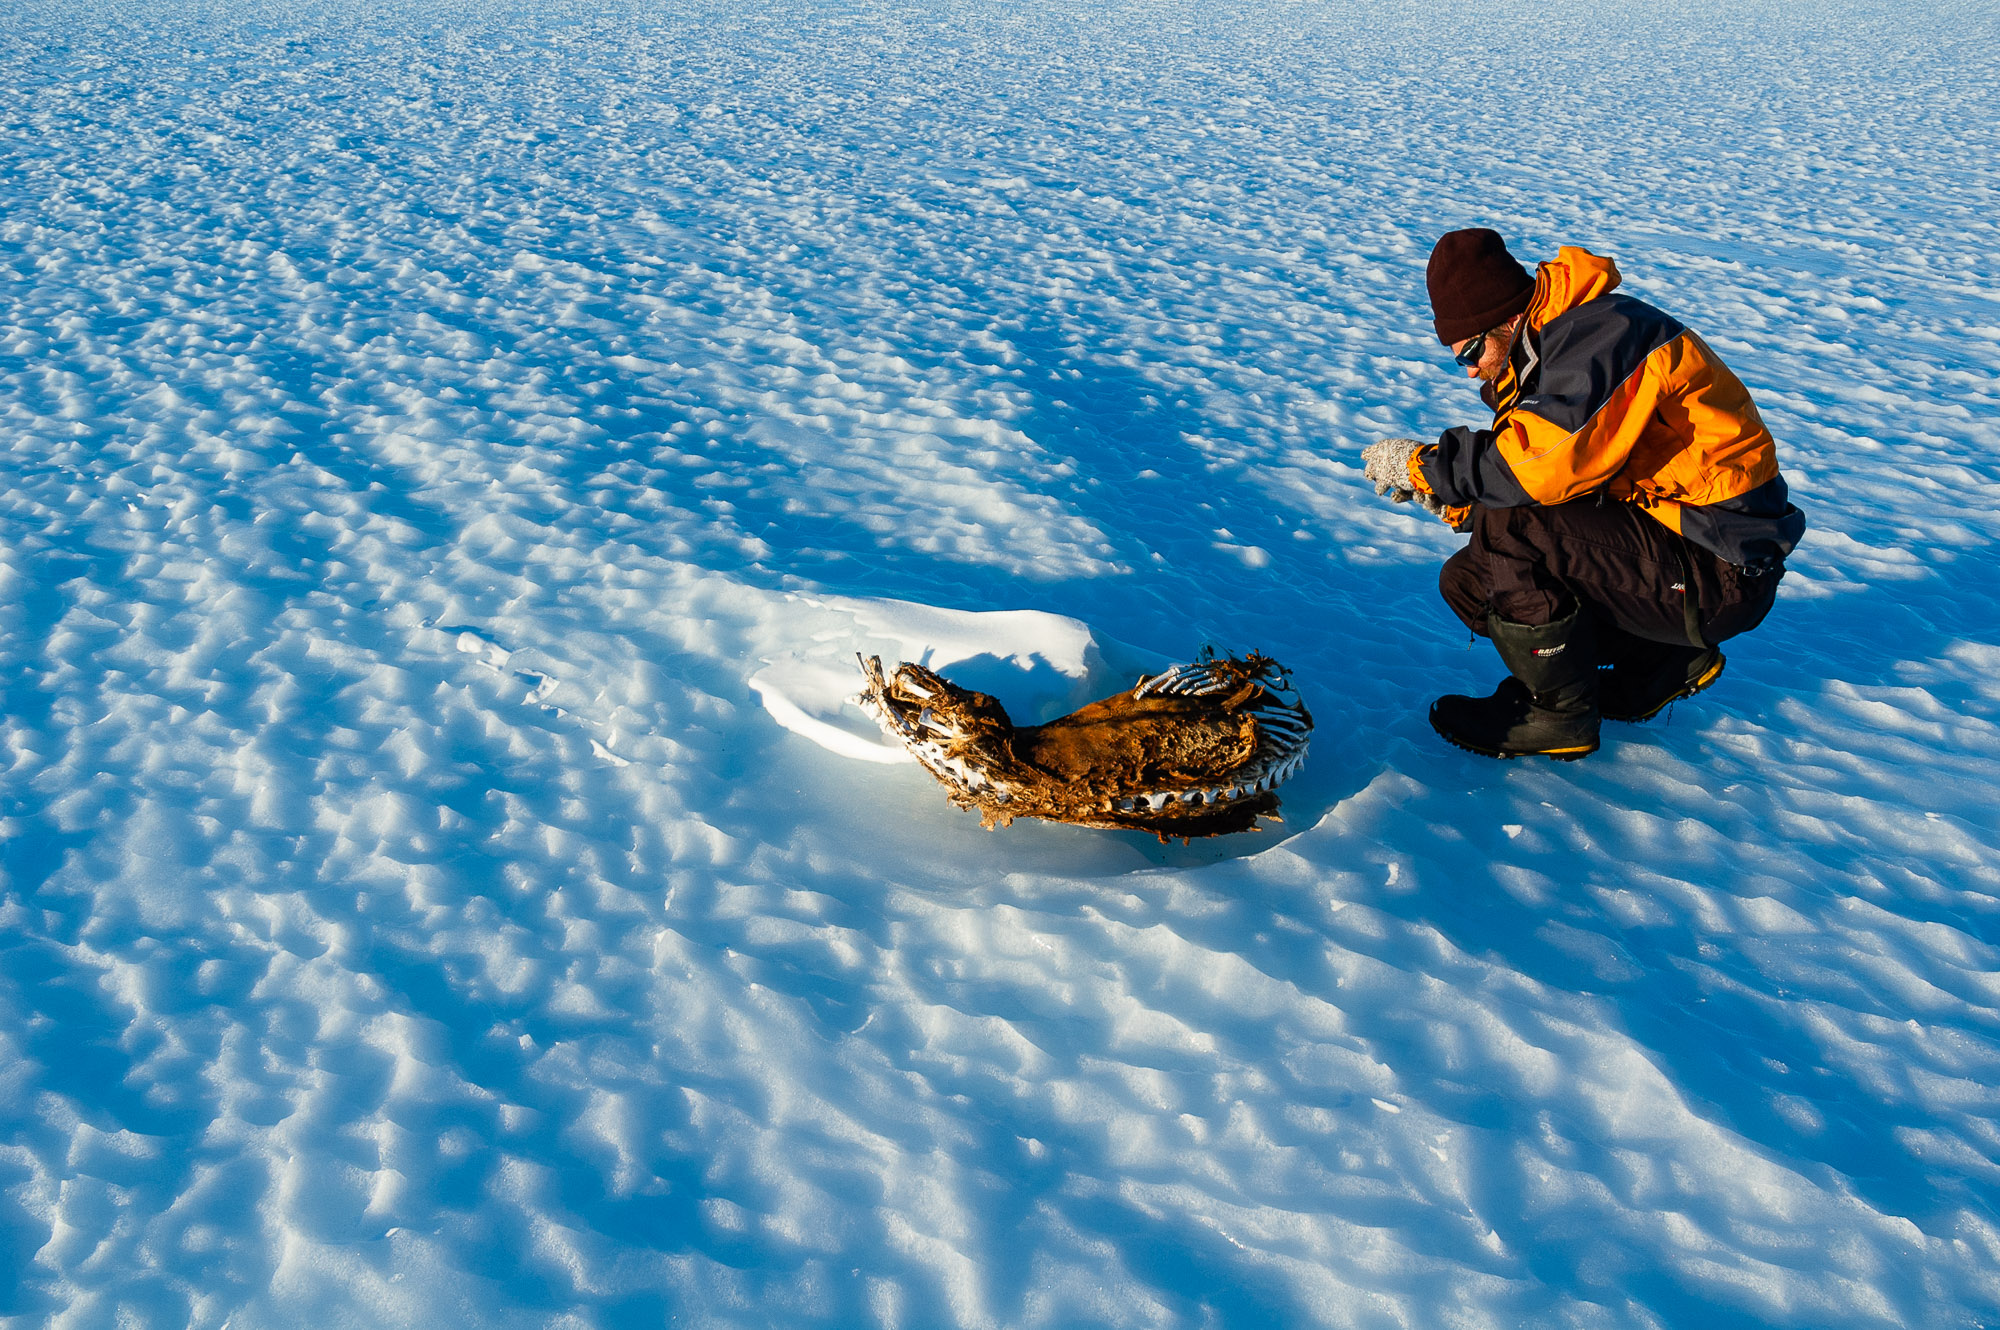 Researcher taking a photograph of a dead, frozen seal inland from Mawson Station, South Masson Range, Framnes Mountains, Mac Robertson Land, Antarctica.